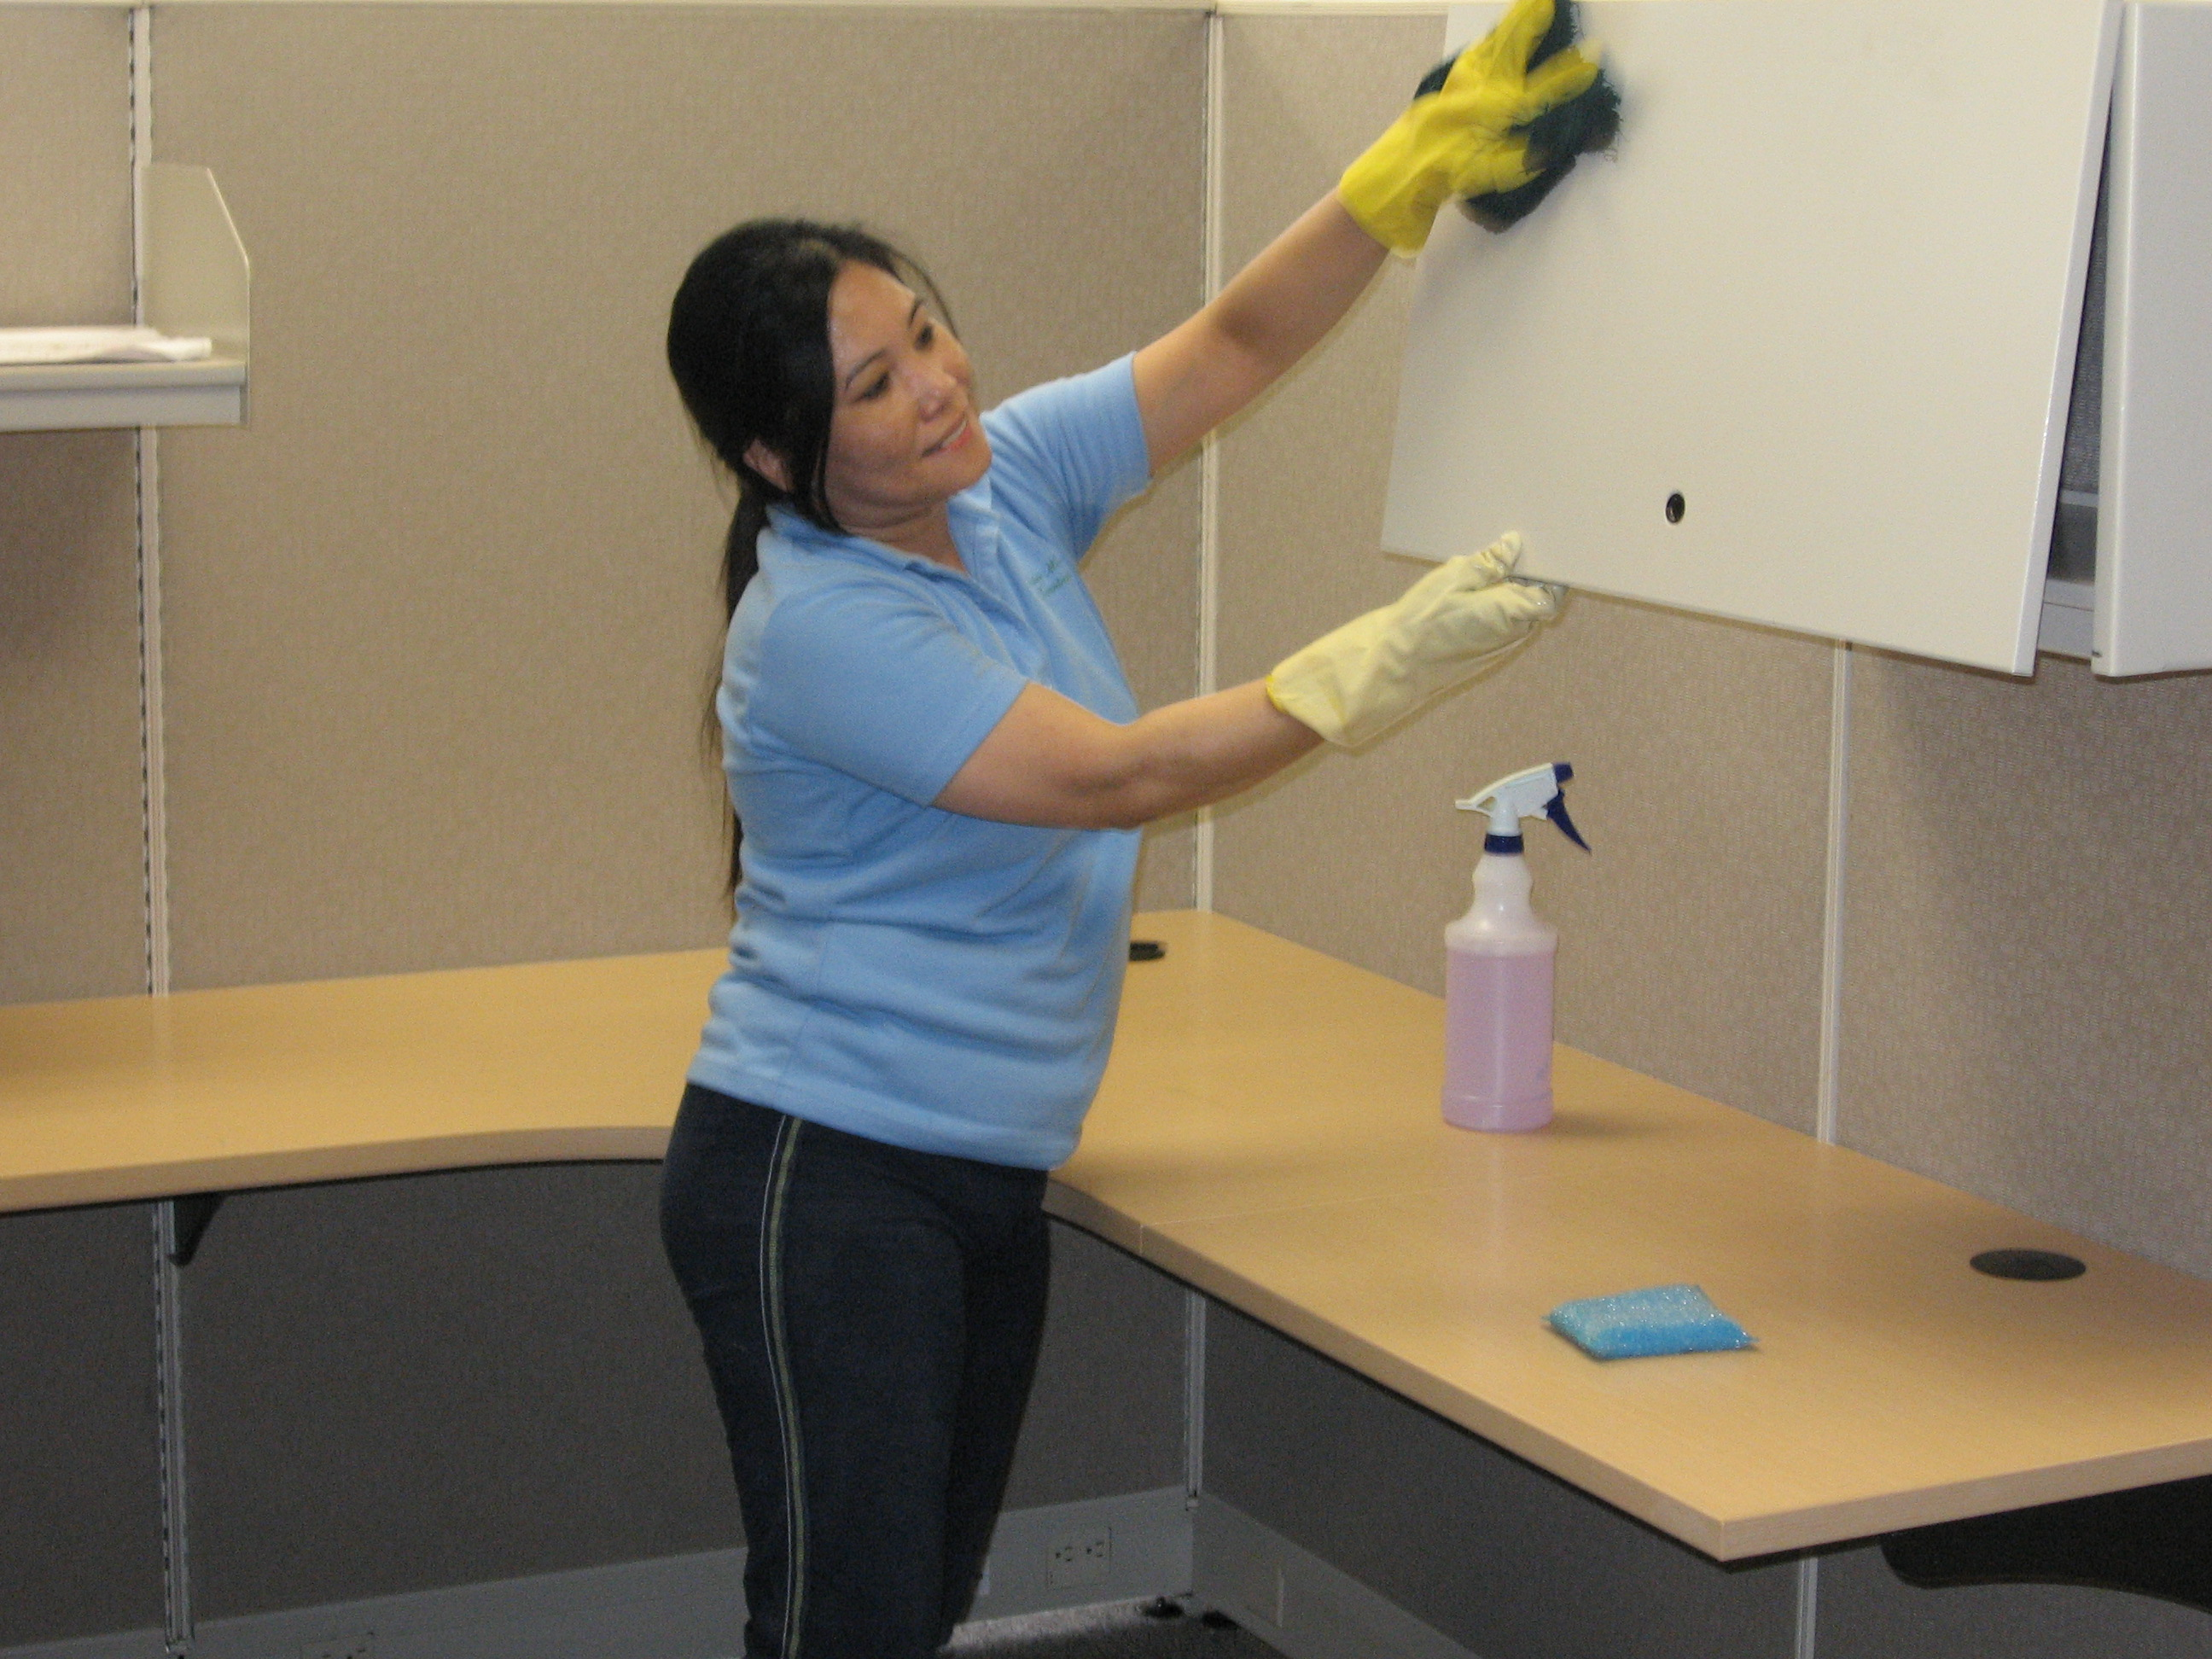 Asian Maid Cleaning Services  Give Your Home a Sense of Peace